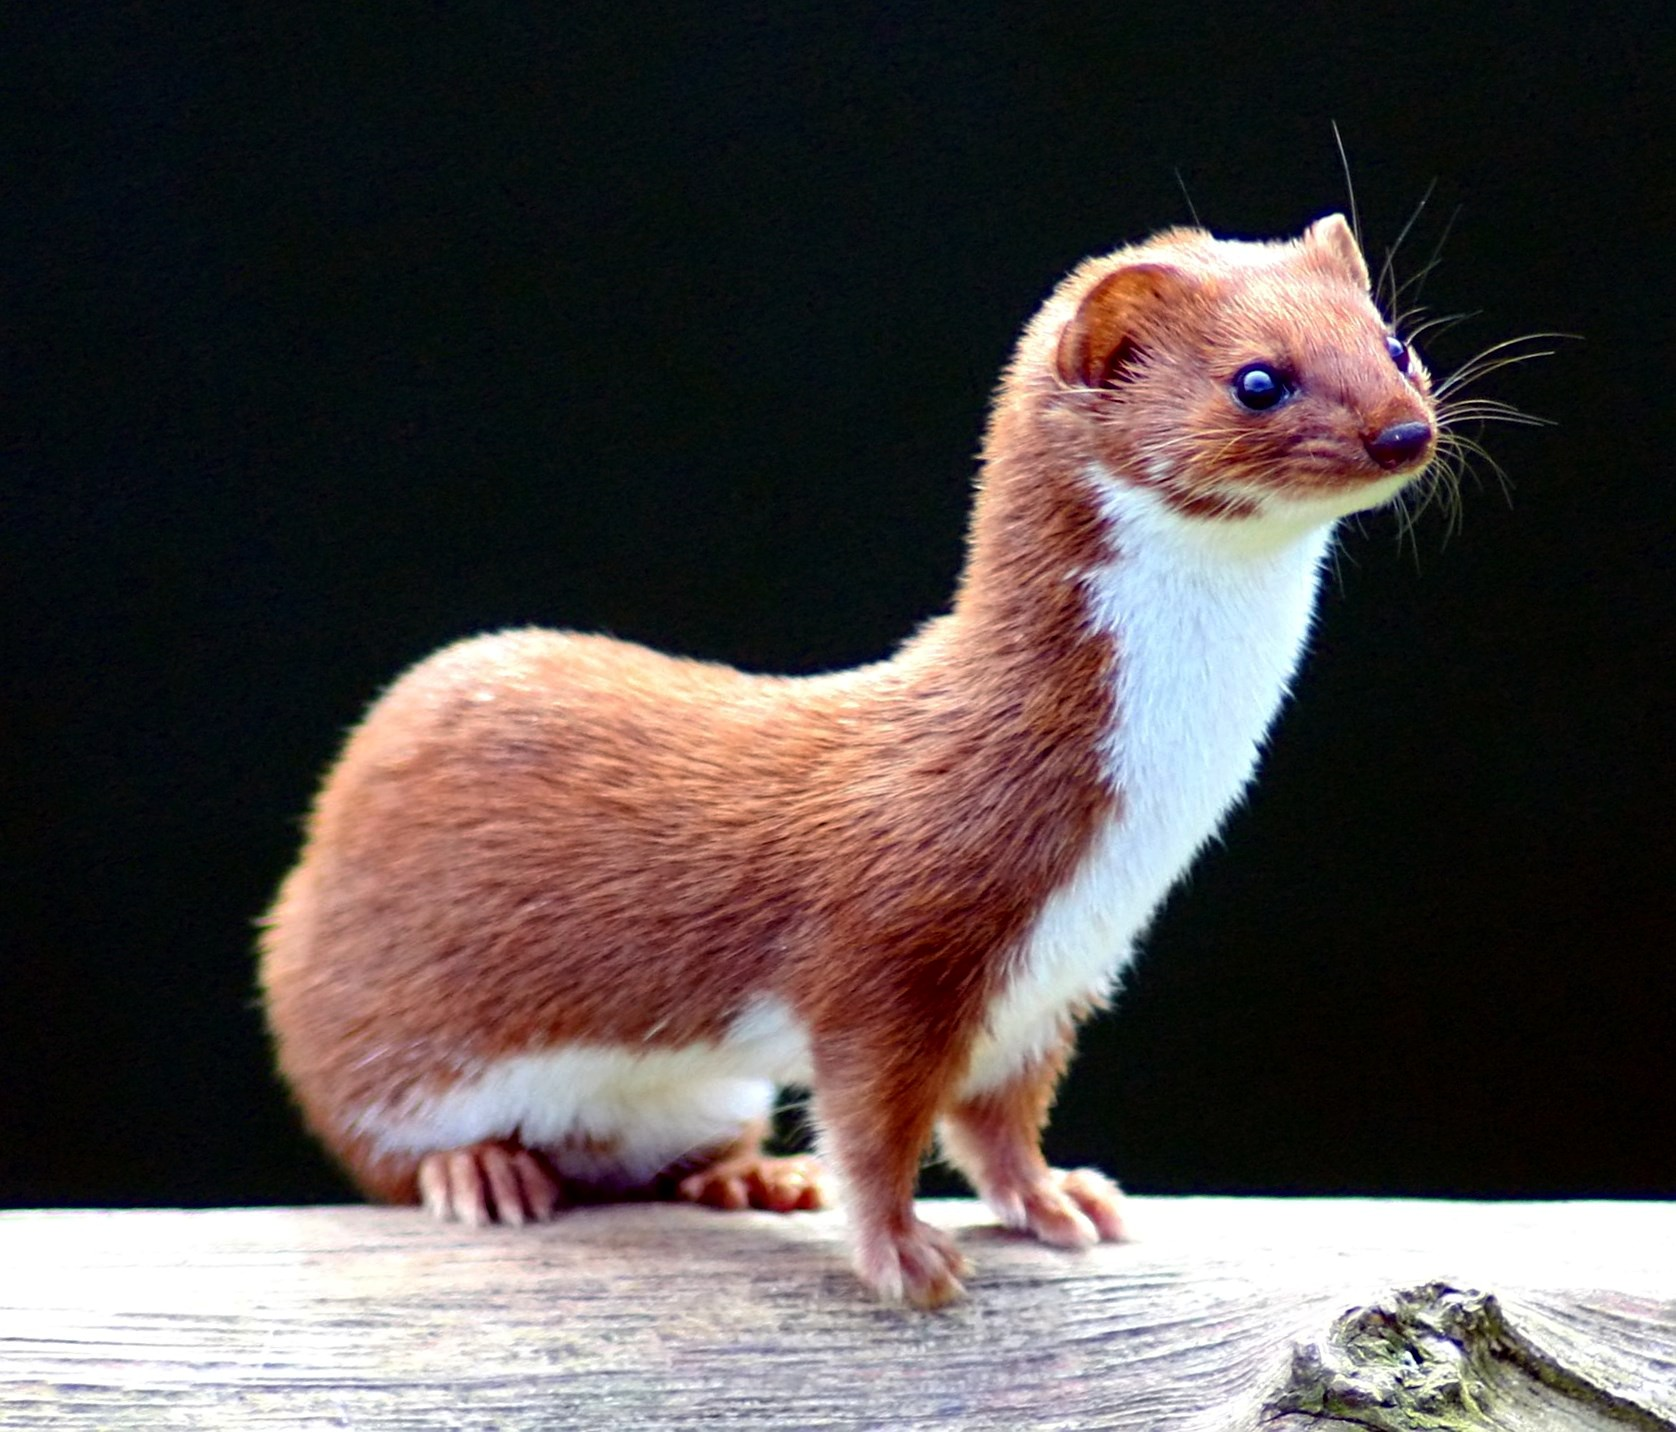 Come to think of it,the weaselDOES look a lot like Andrew Hauptman